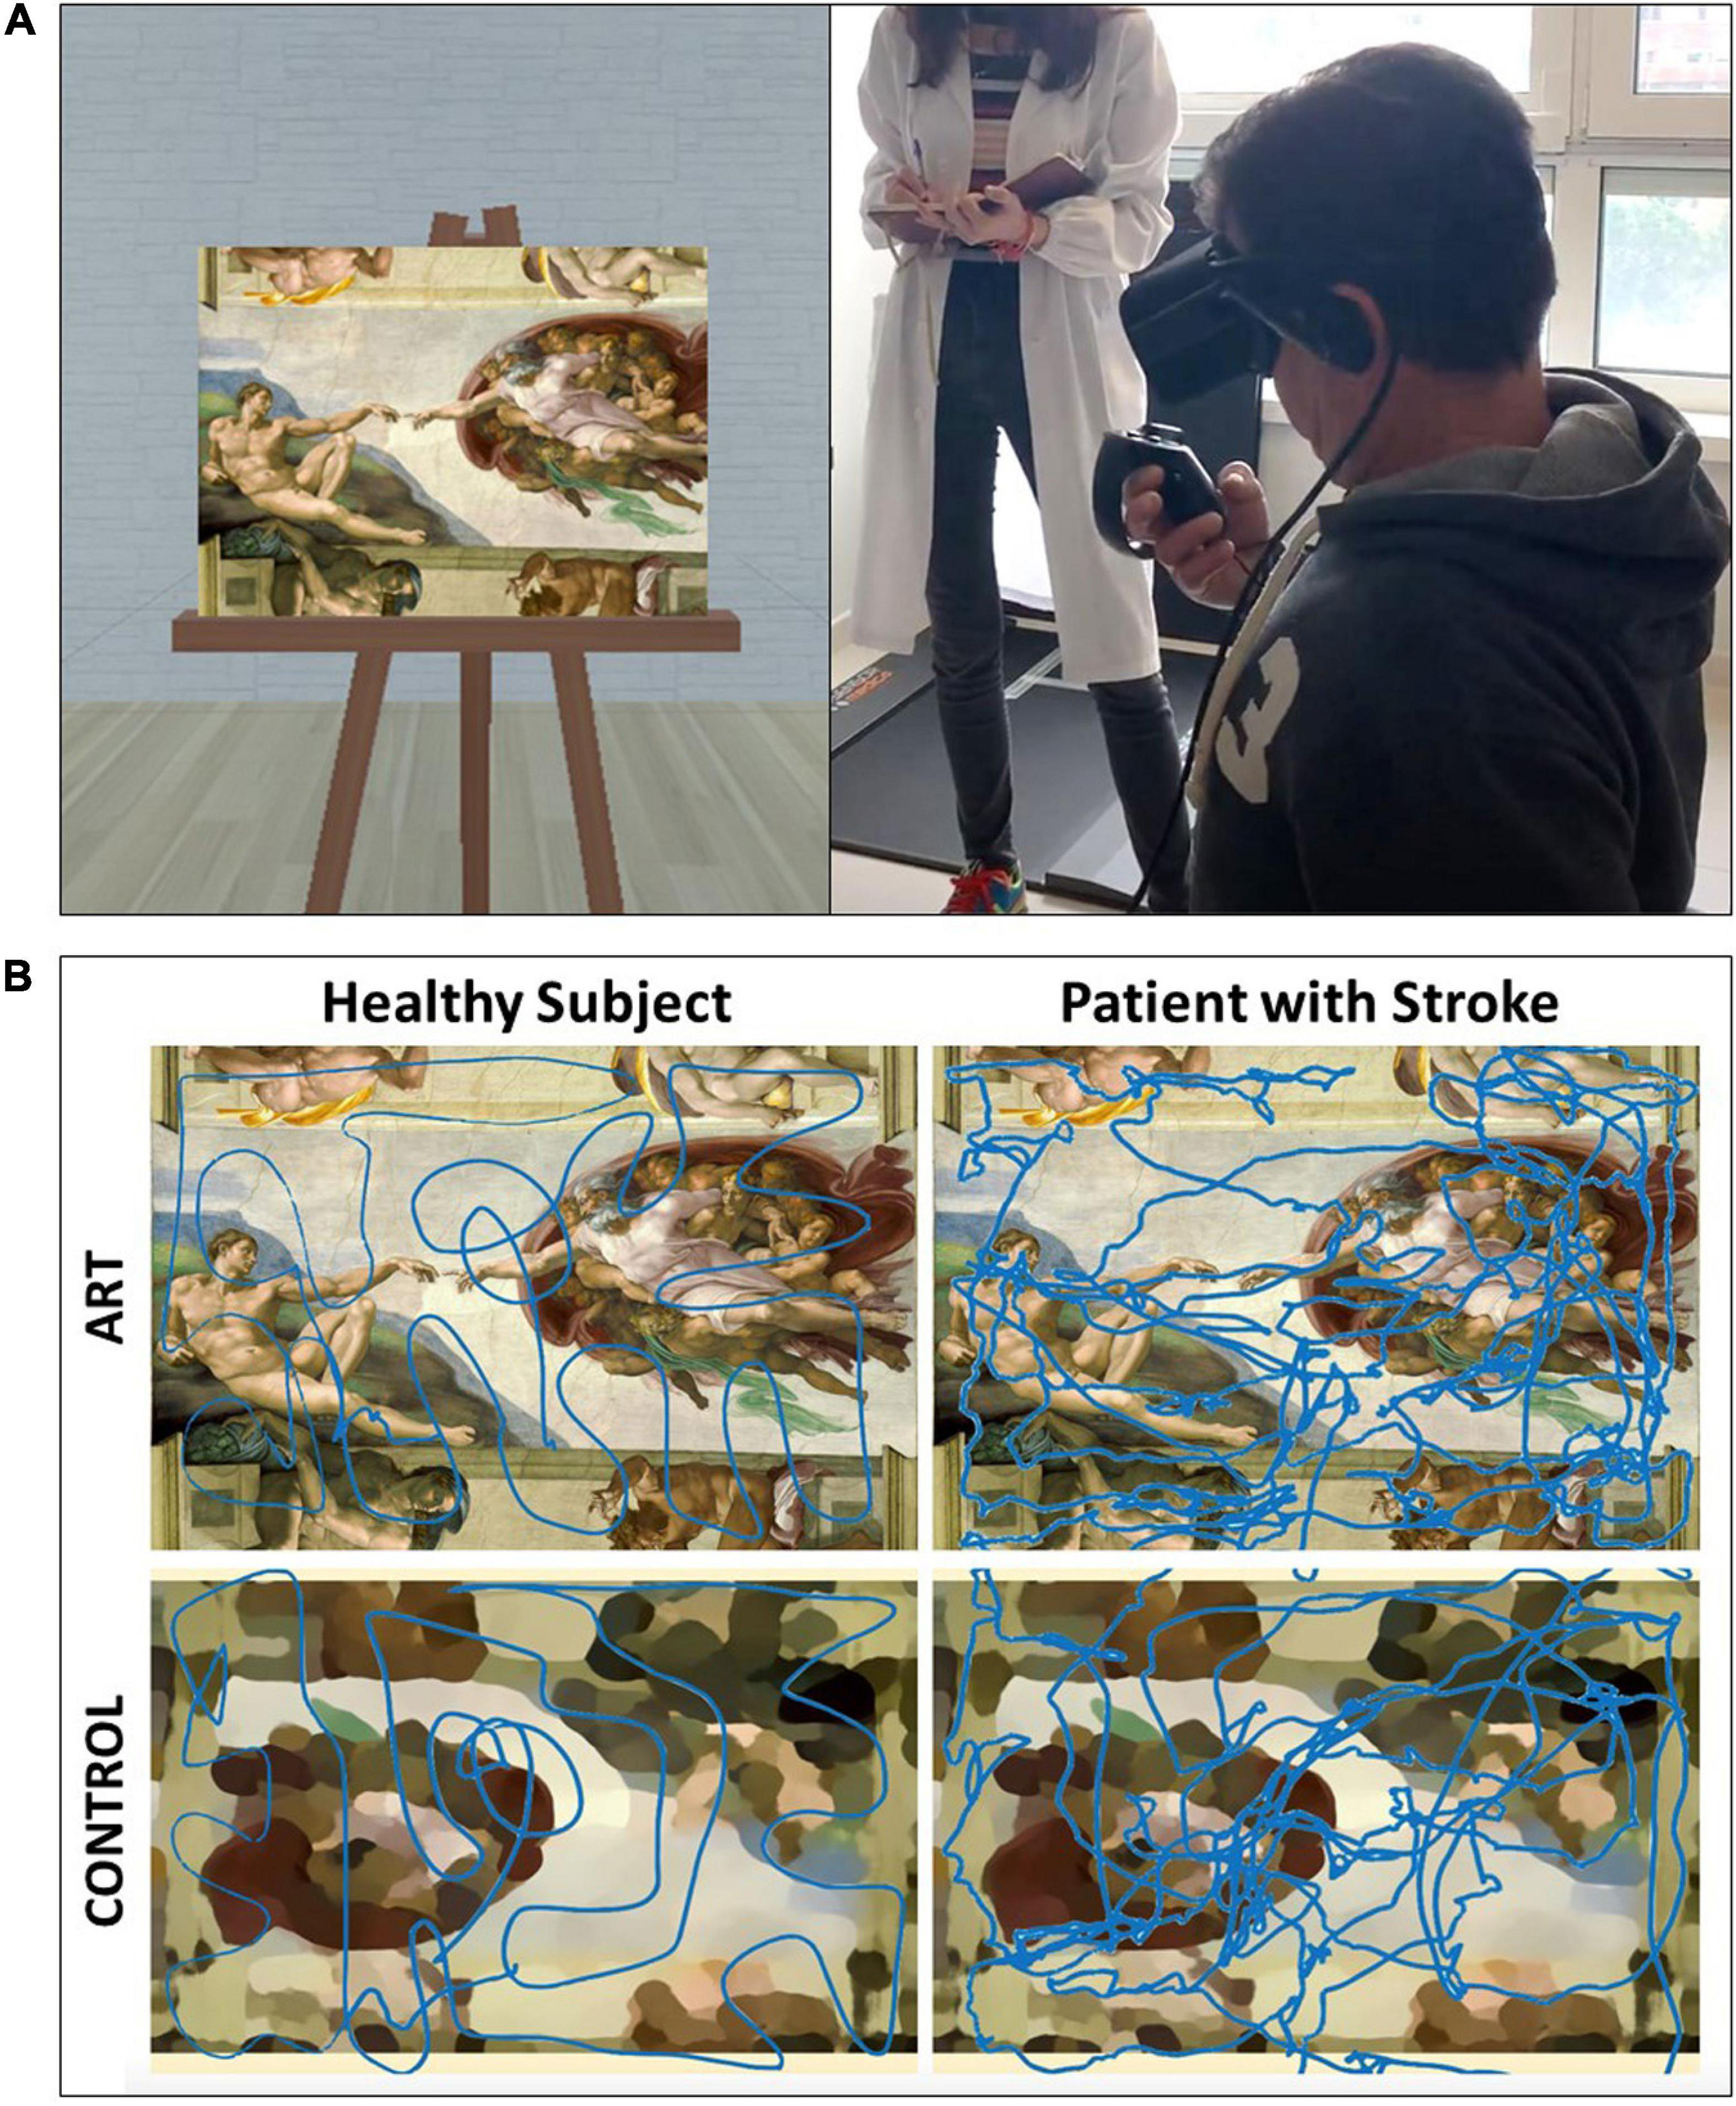 [ARTICLE] The Michelangelo Effect: Art Improves the Performance in a Virtual Reality Task Developed for Upper Limb Neurorehabilitation – Full Text